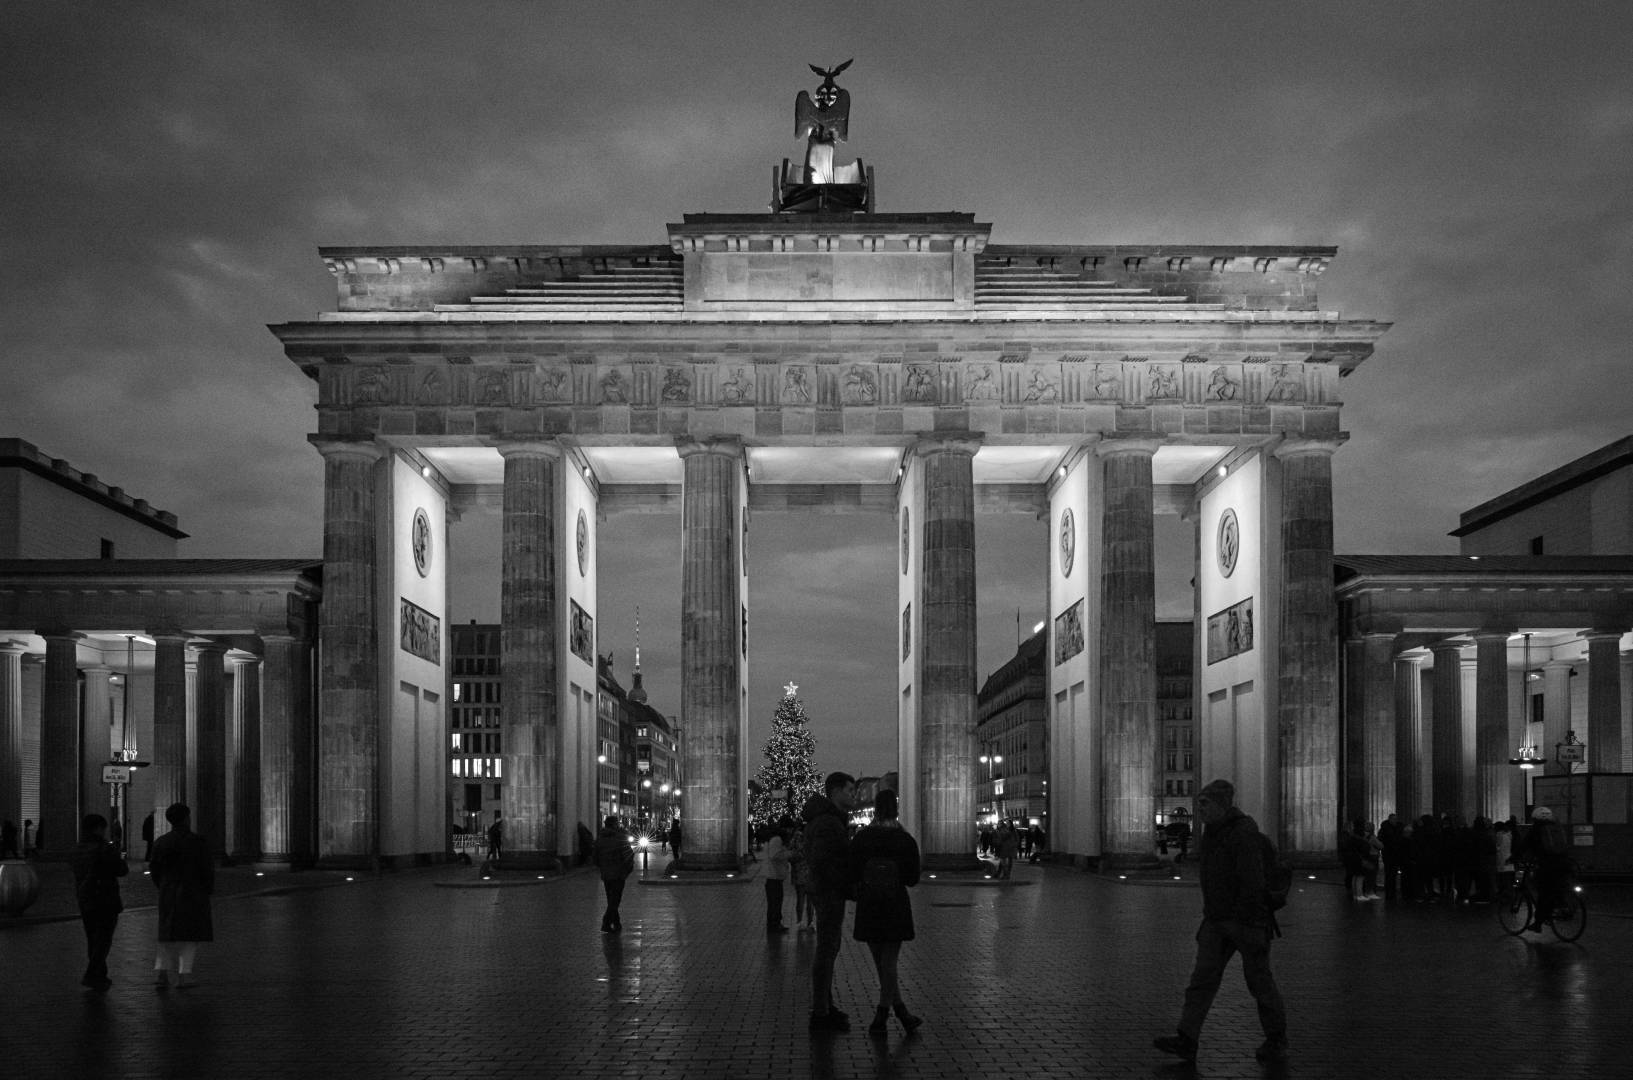 Eight years after the Belin launch of the first Monochrom, black and white returns to the capital. Above, Brandenburger Tor seen from Pariser Platz; below, from the Tiergarten.